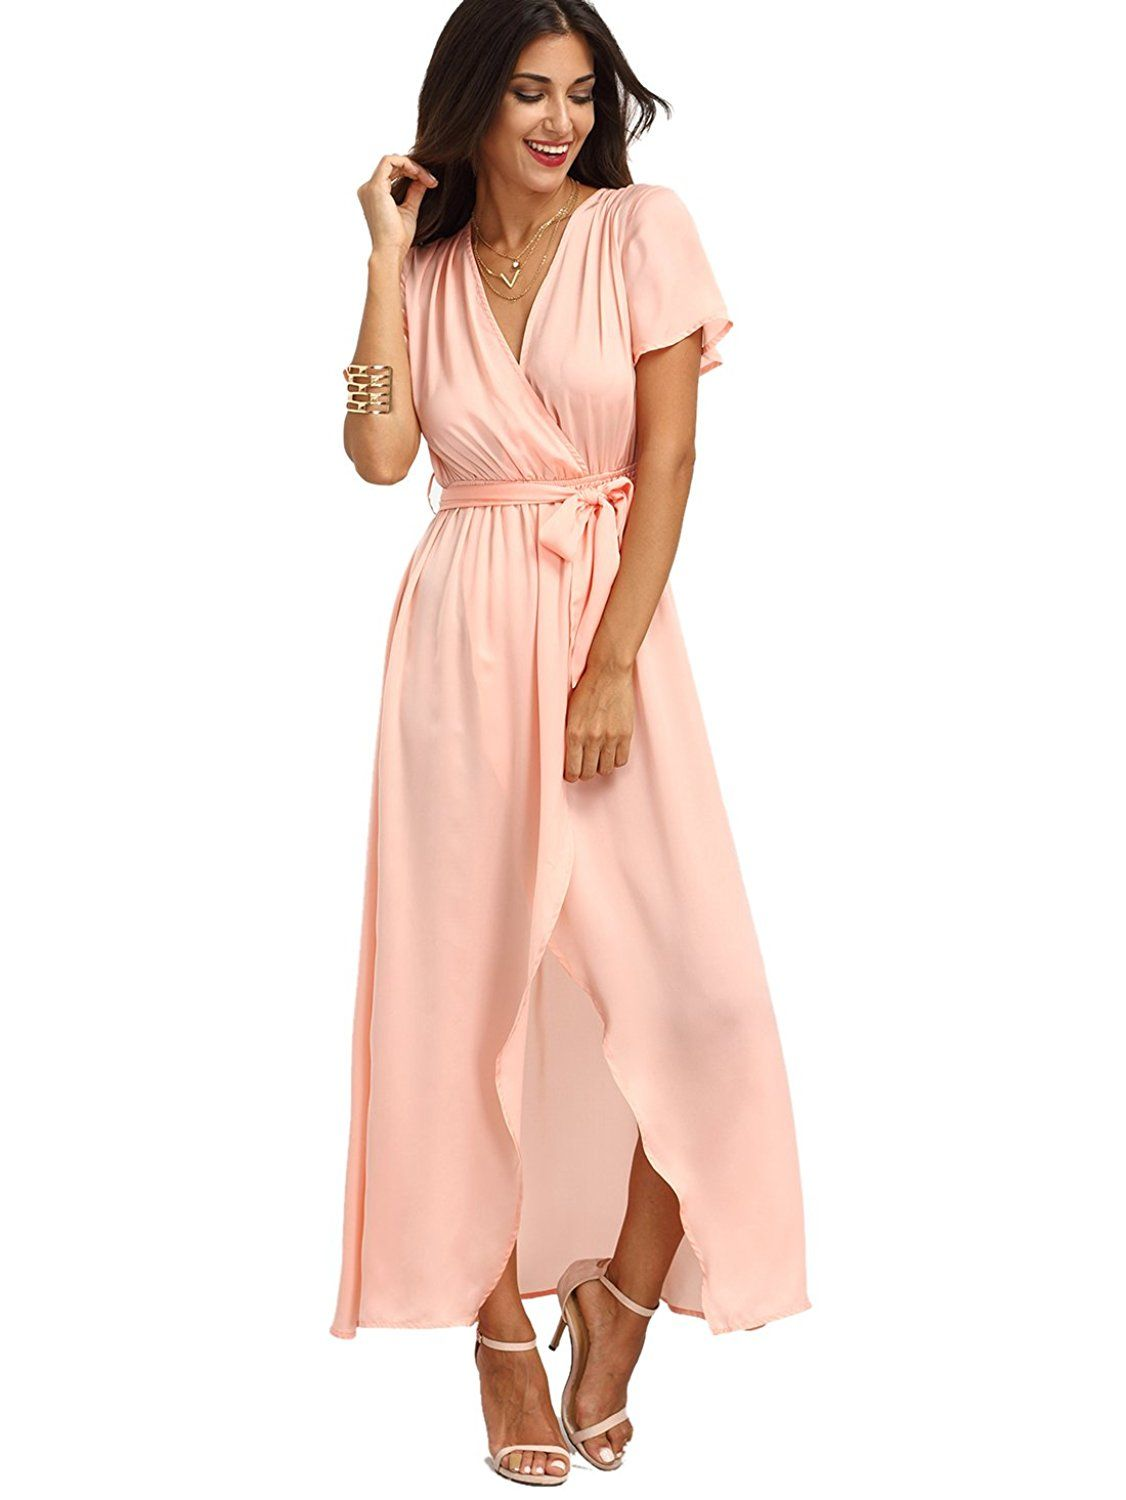 6fa3f2192 ROMWE Women's Bohemian Short Sleeve V neck Long Beach Wrap Maxi Dress at  Amazon Women's Clothing store: